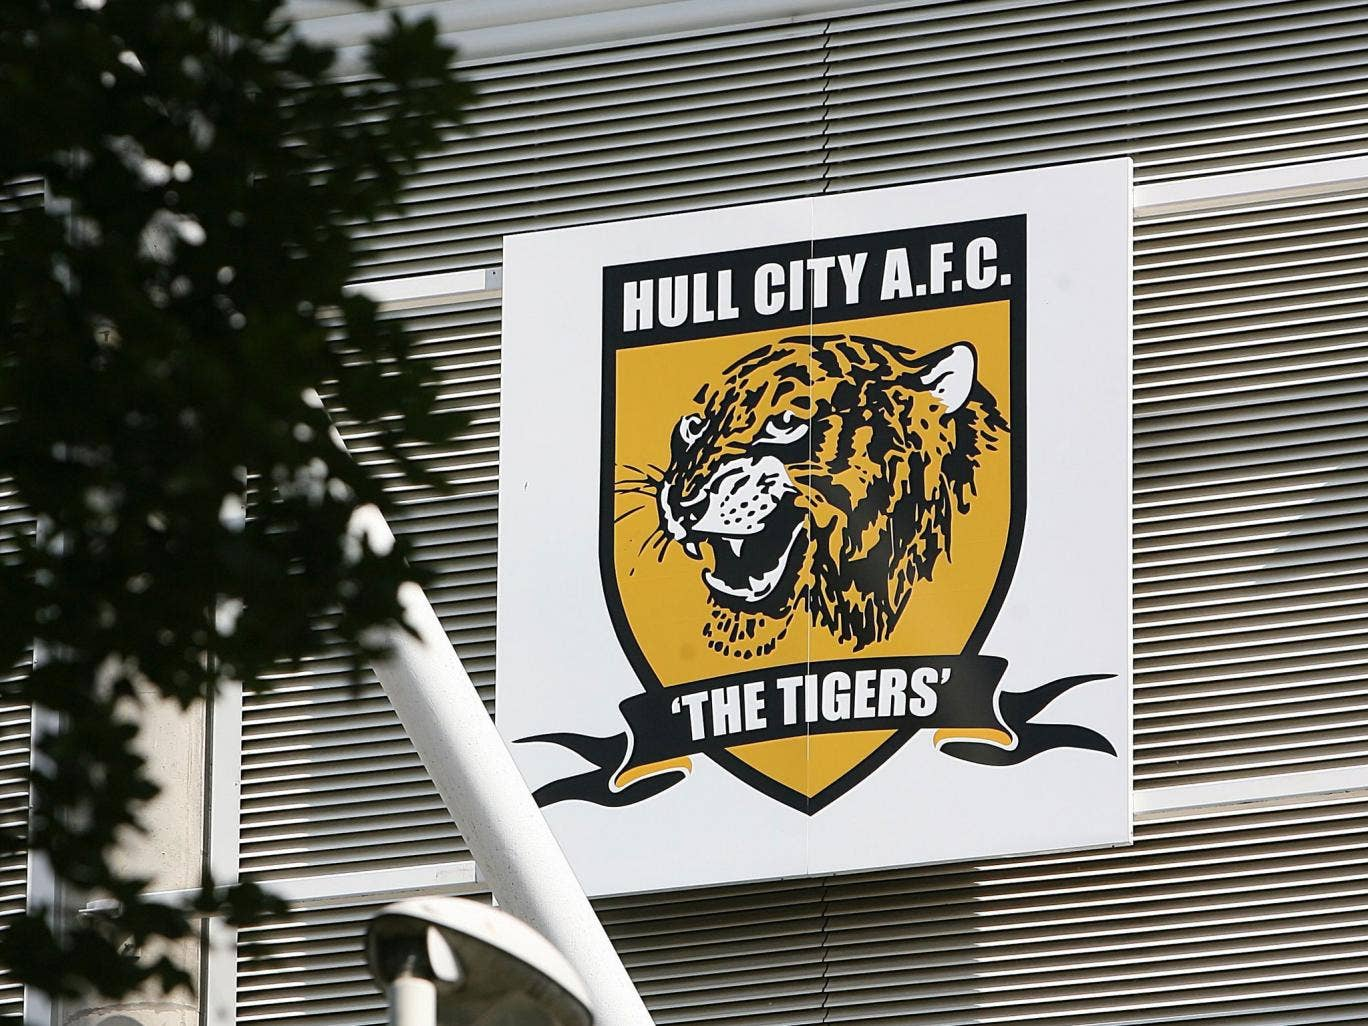 Hull City's owner has described supporters protesting against his plan to change the name to Hull Tigers as 'hooligans' and warned he will put the club up for sale if the fans do not accept his authority